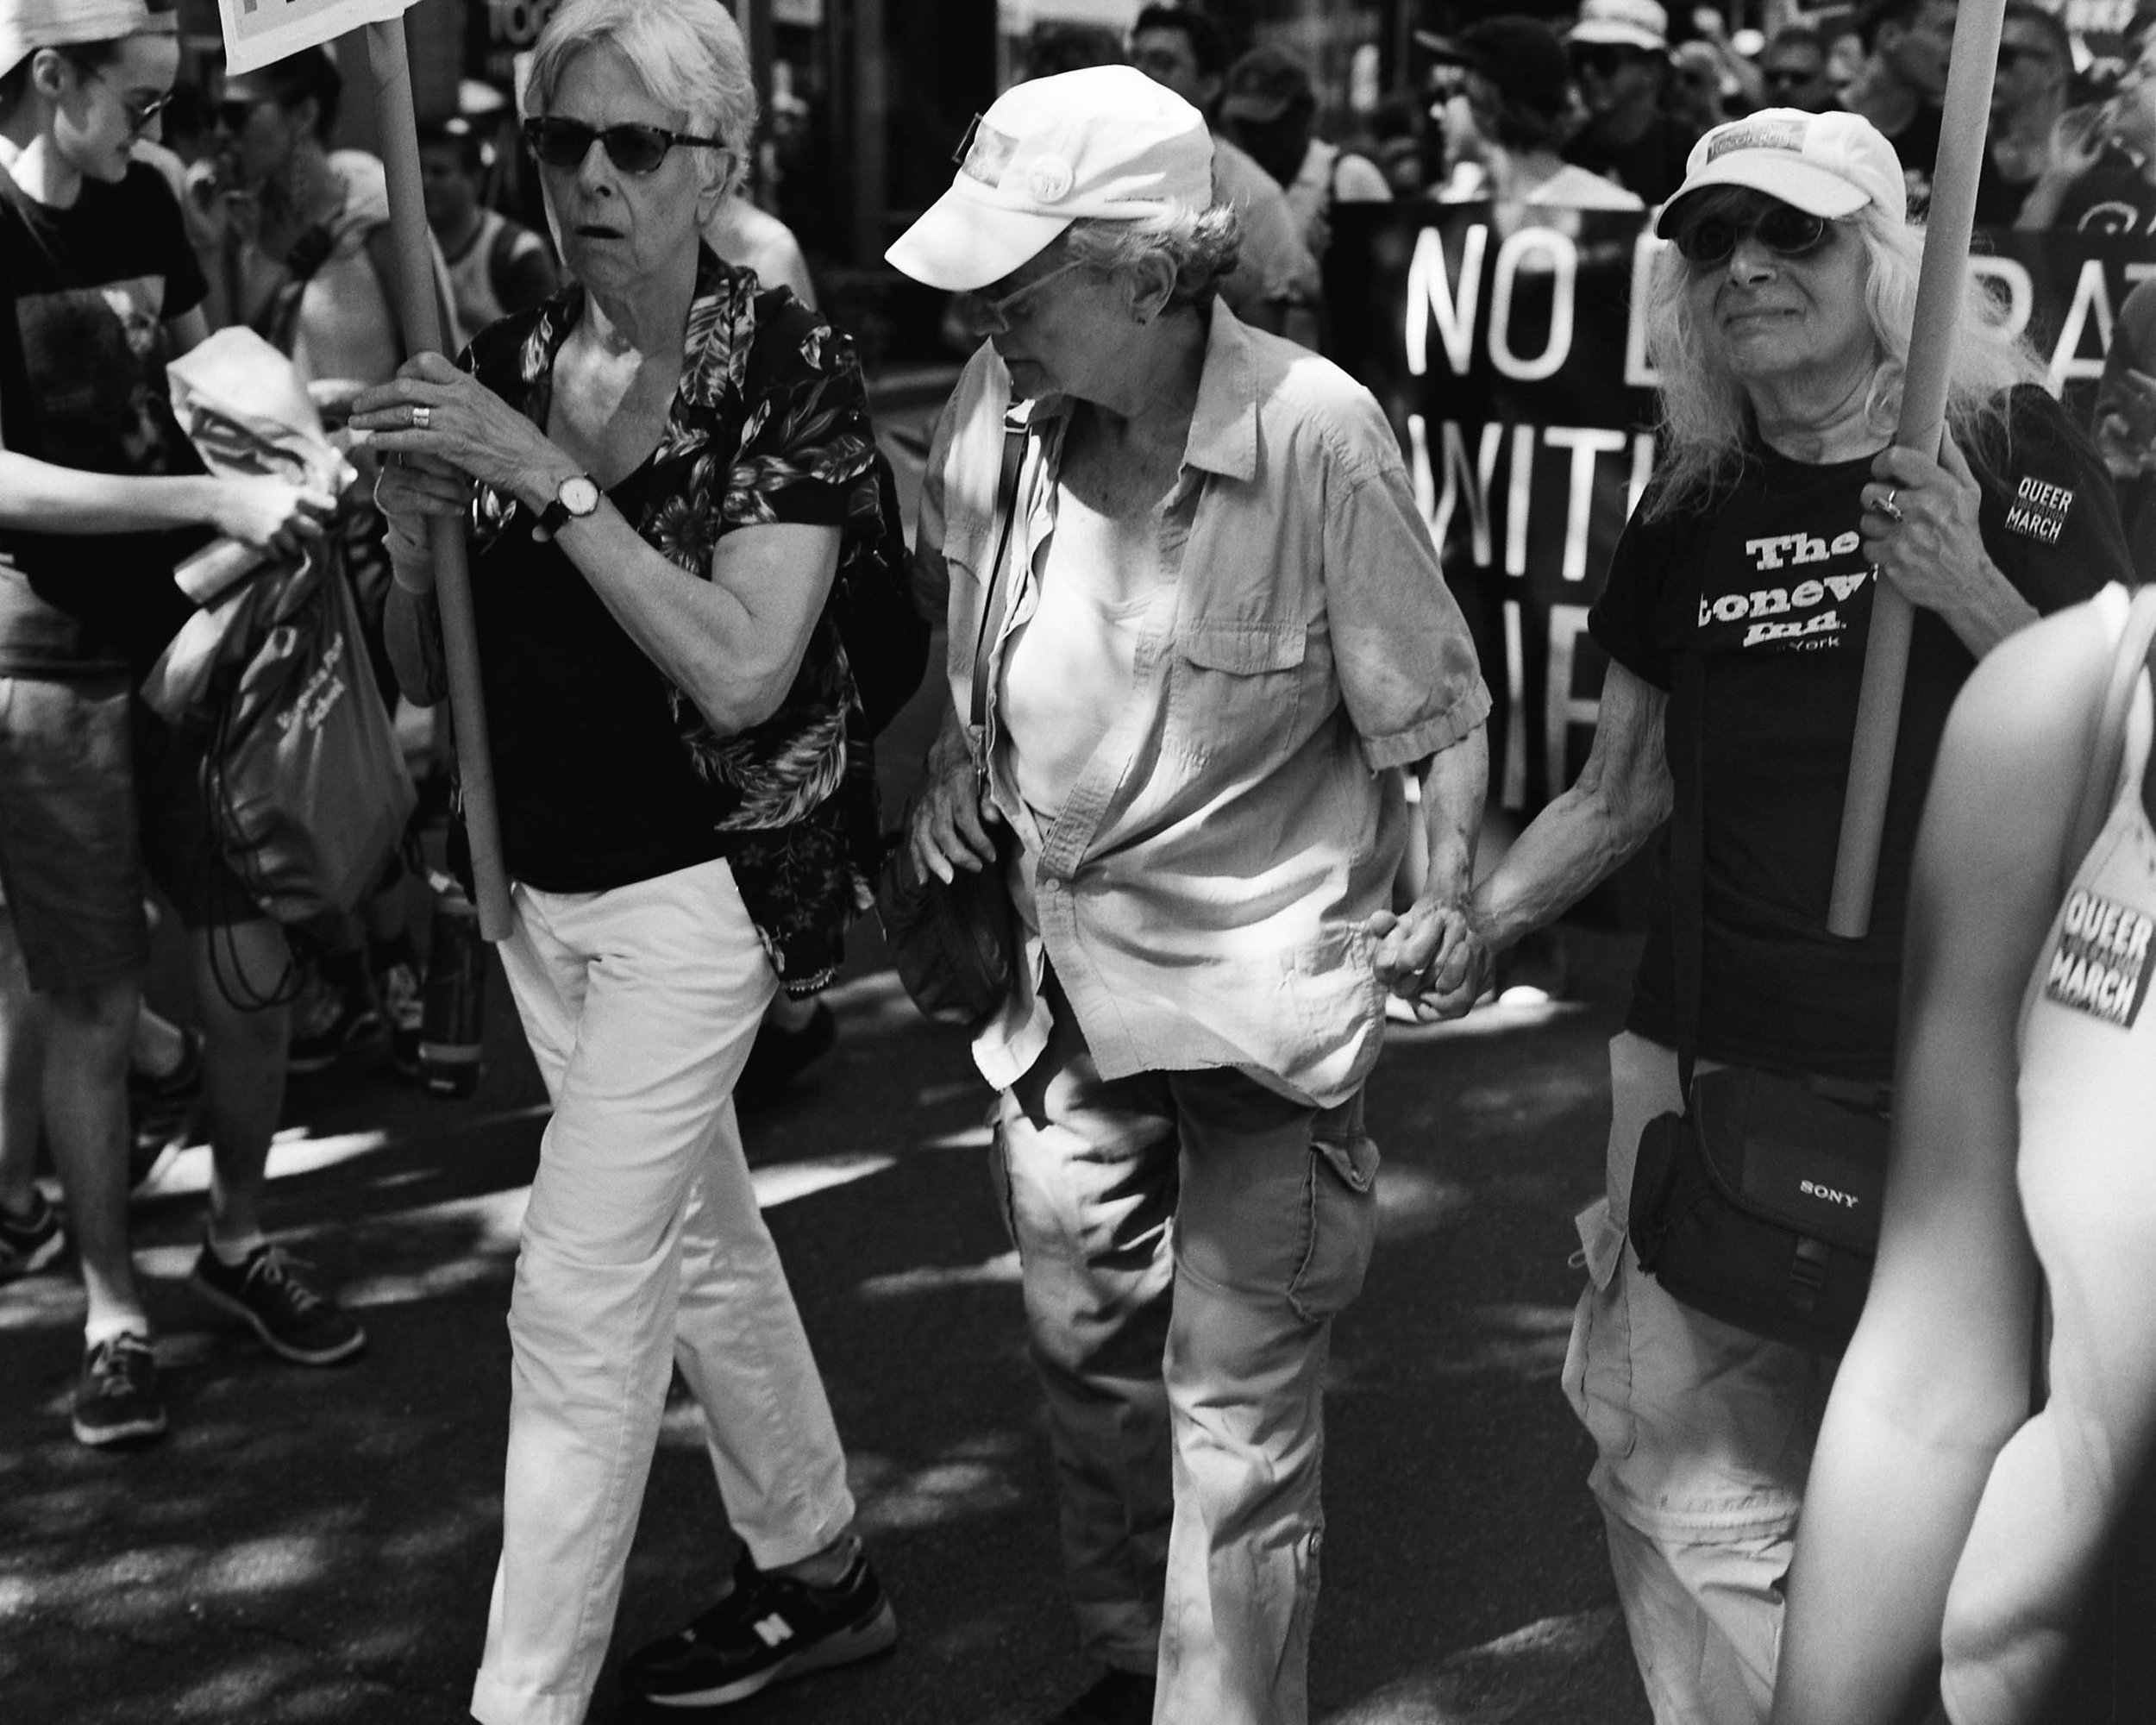 Three original protesters from the Stonewall Rebellion